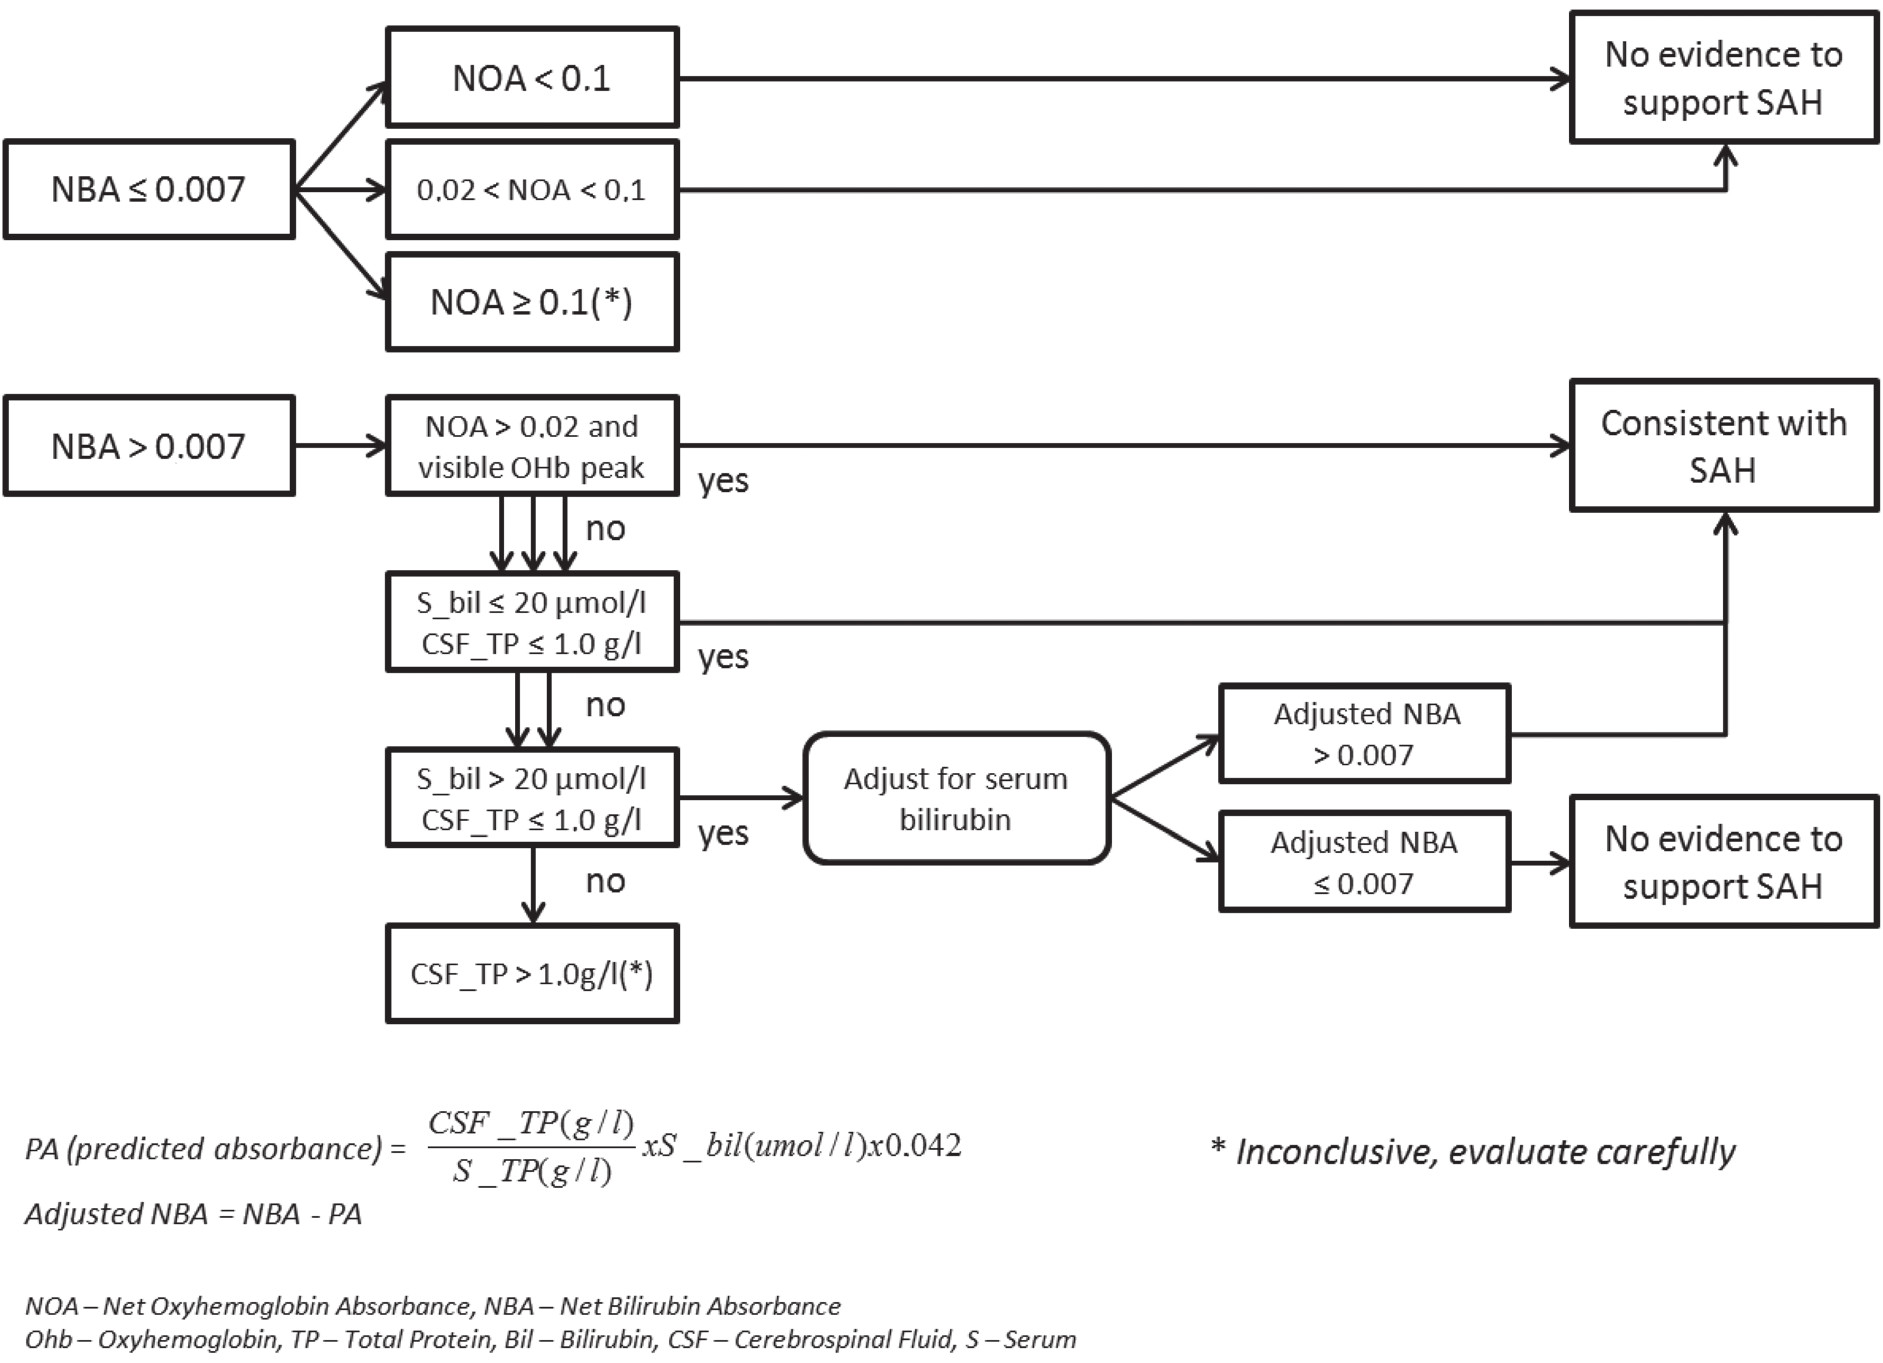 """Fig. 5. A diagnostic flow chart for oxyhemoglobin and bilirubin absorbance in diagnosis of subarachnoid hemorrhage. Modified from """"Revised national guidelines for analysis of cerebrospinal fluid for bilirubin in suspected subarachnoid hemorrhage, 2008""""."""